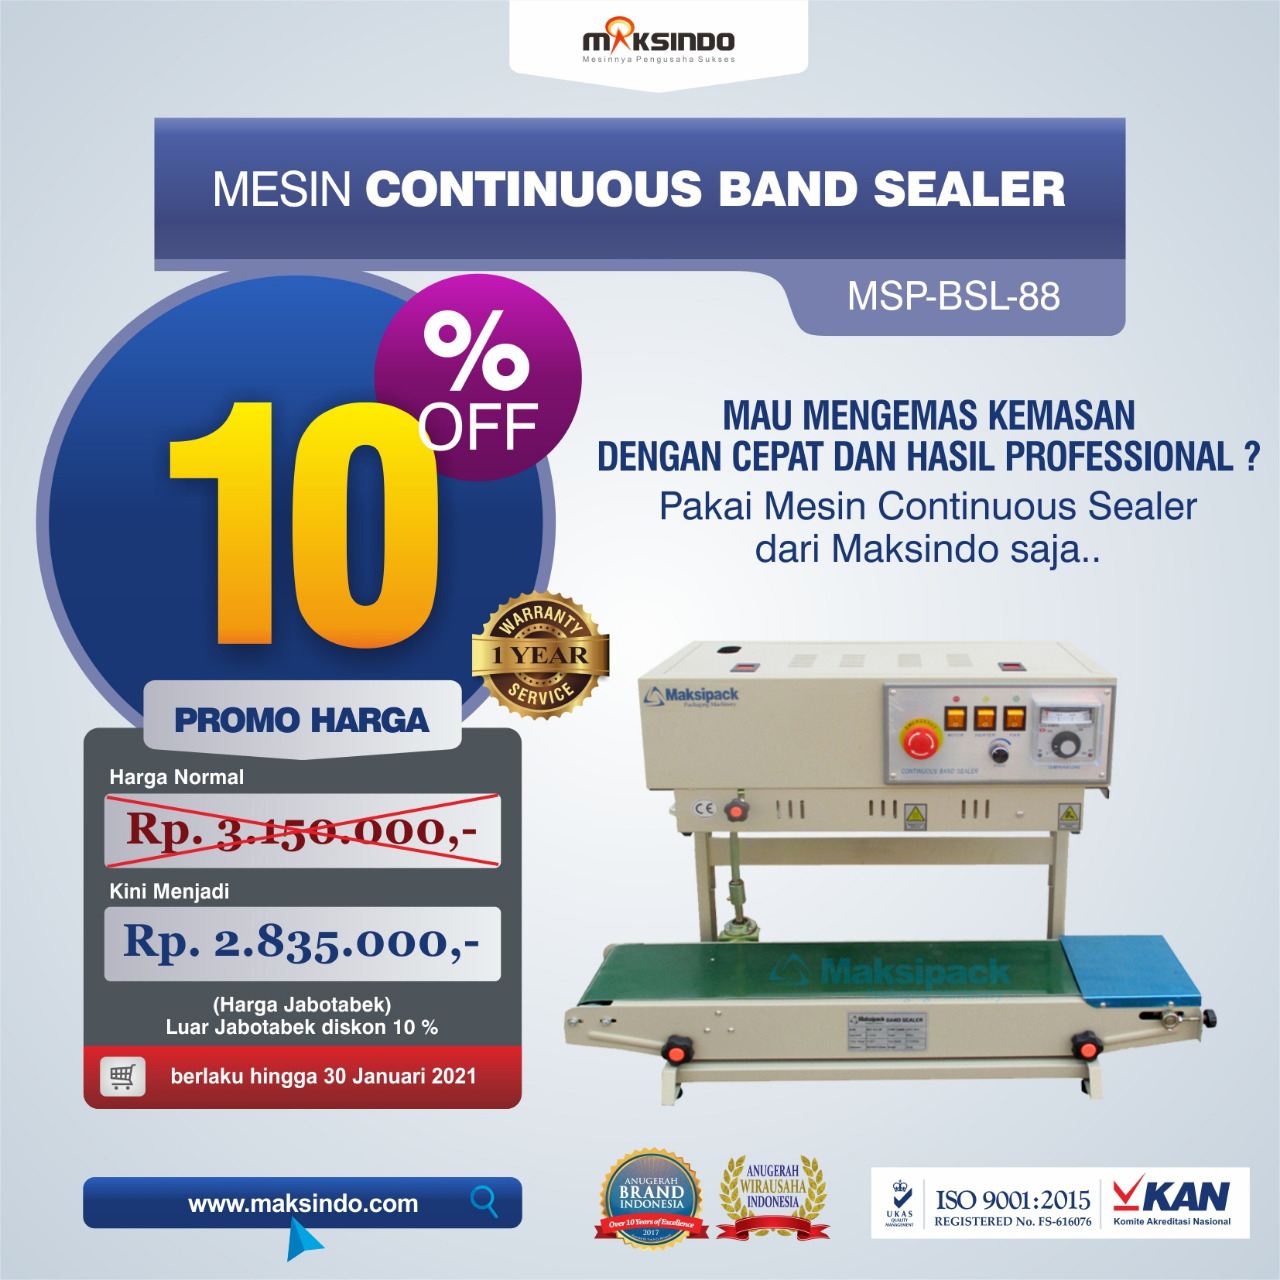 Mesin Continuous Band Sealer MSP-BSL-88